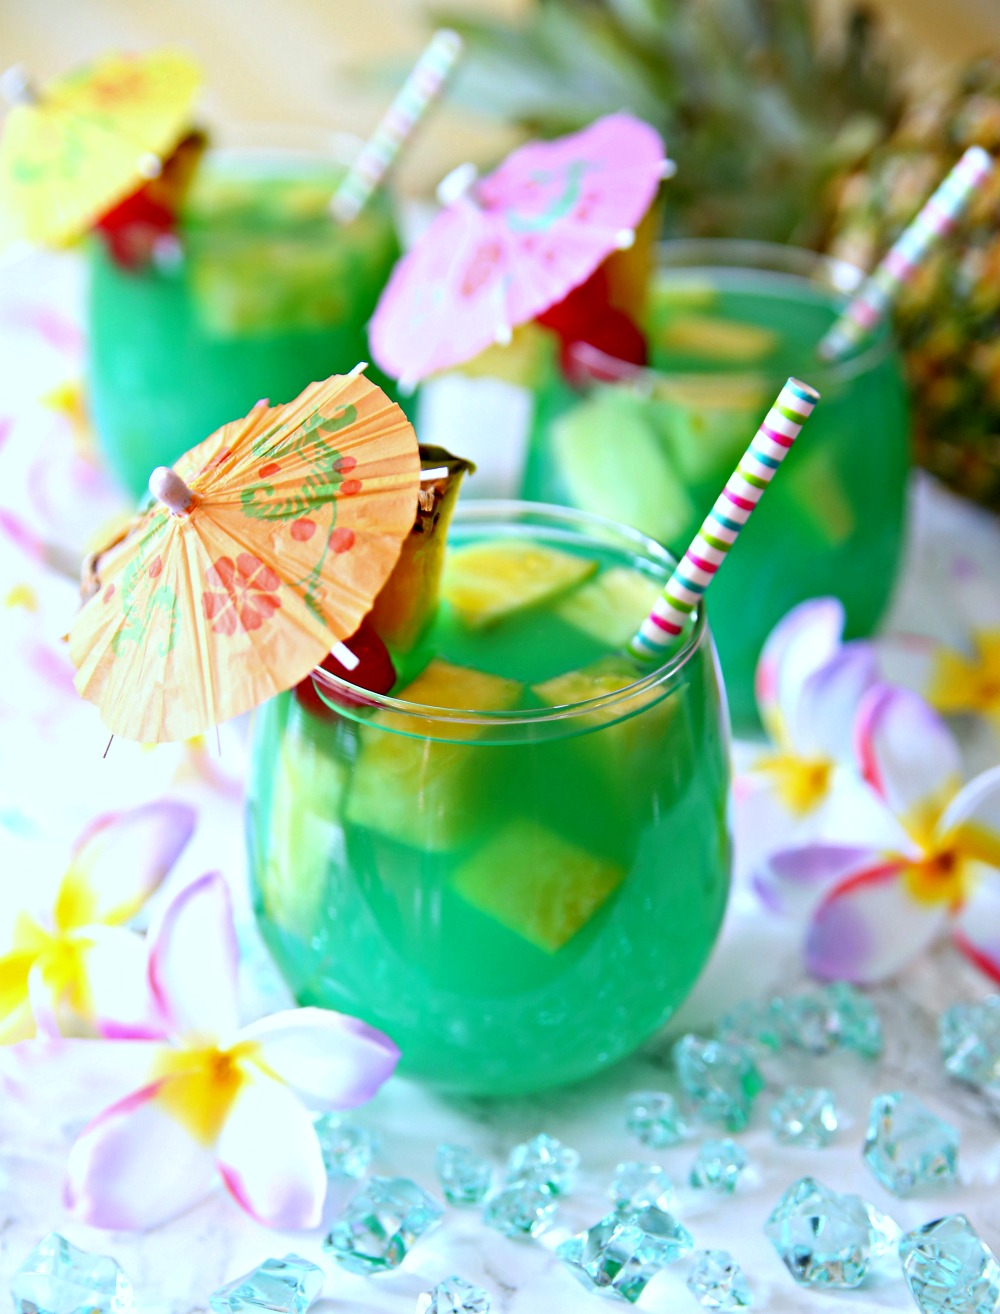 Relax this summer with a tall glass of Mermaid Water Rum Punch.